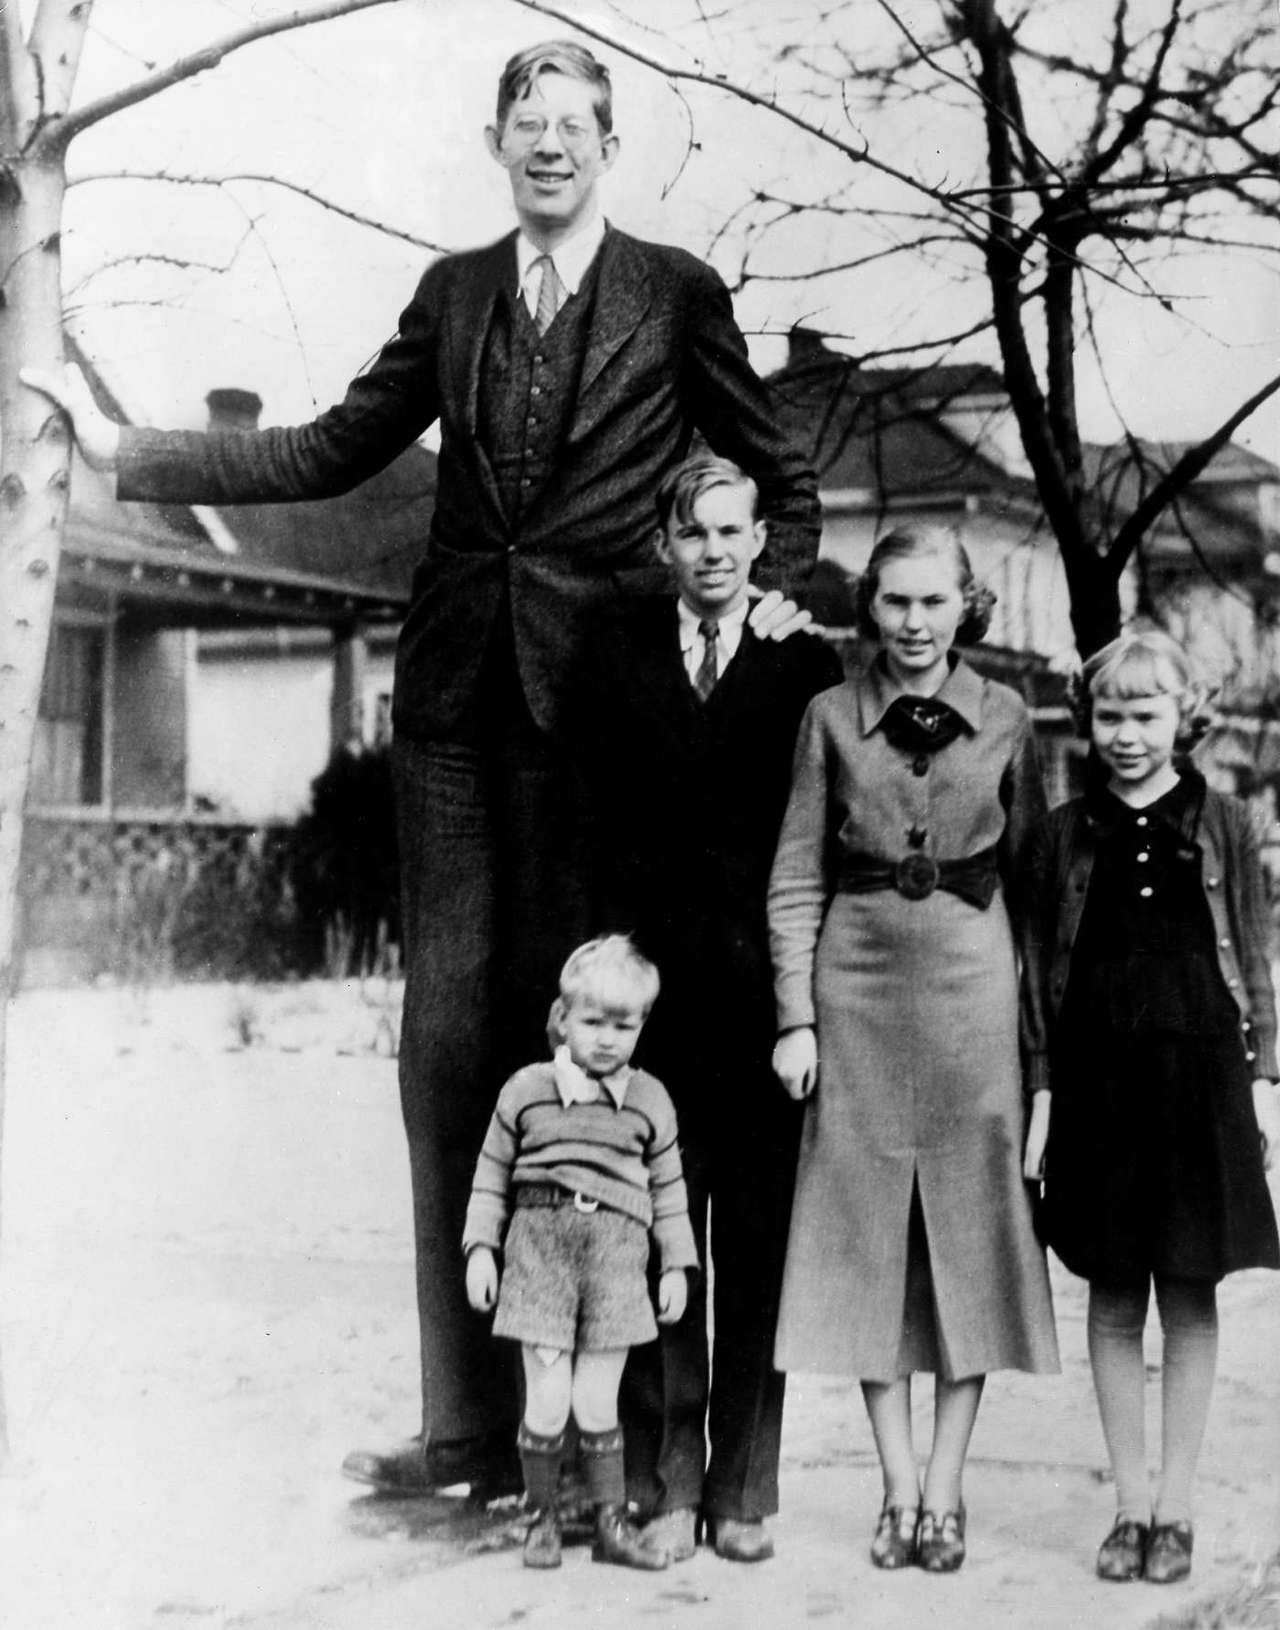 Robert Wadlow the world s tallest man in history with his… – History